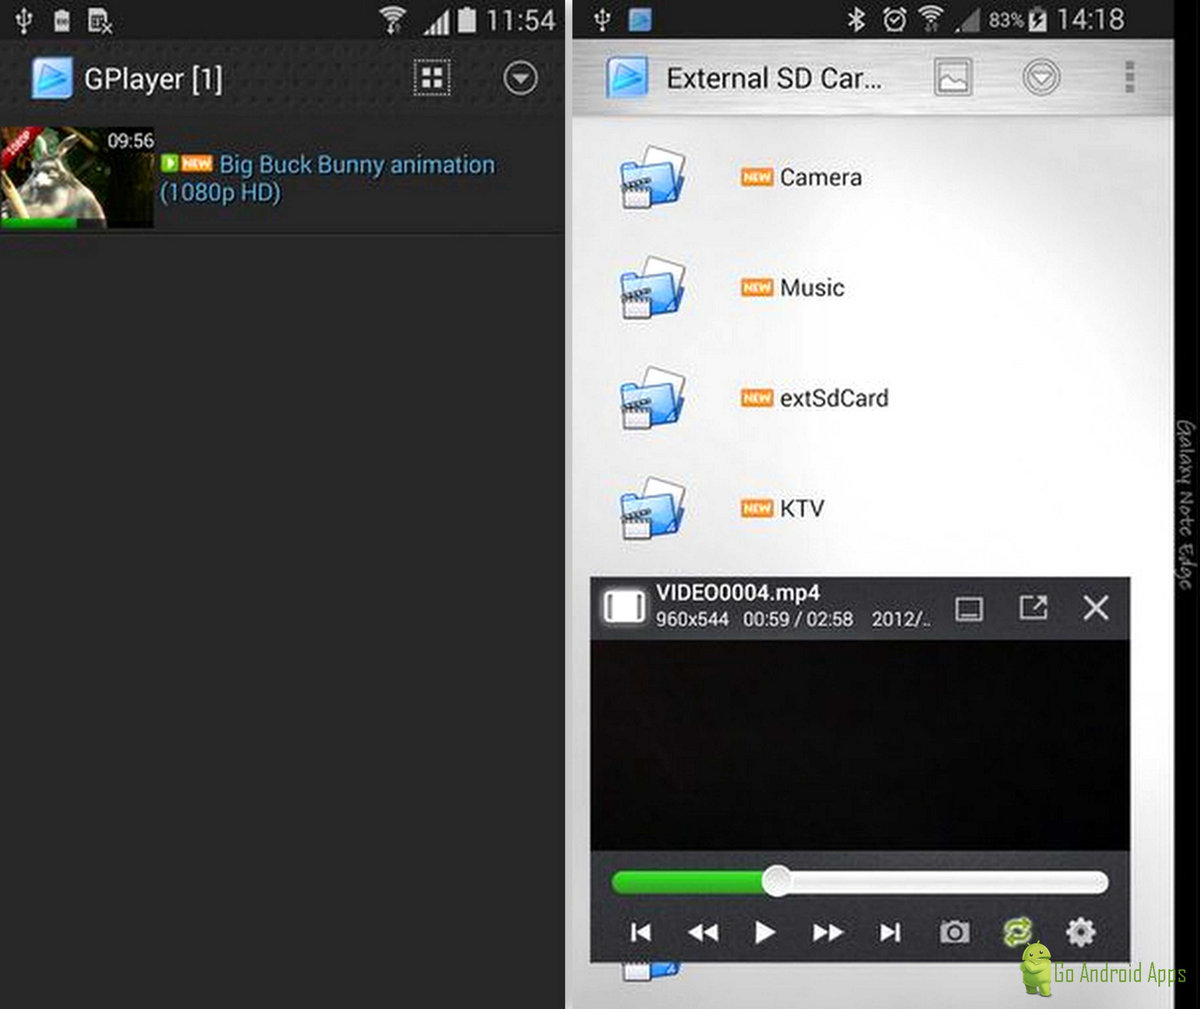 vlc player for android 4.0 free download